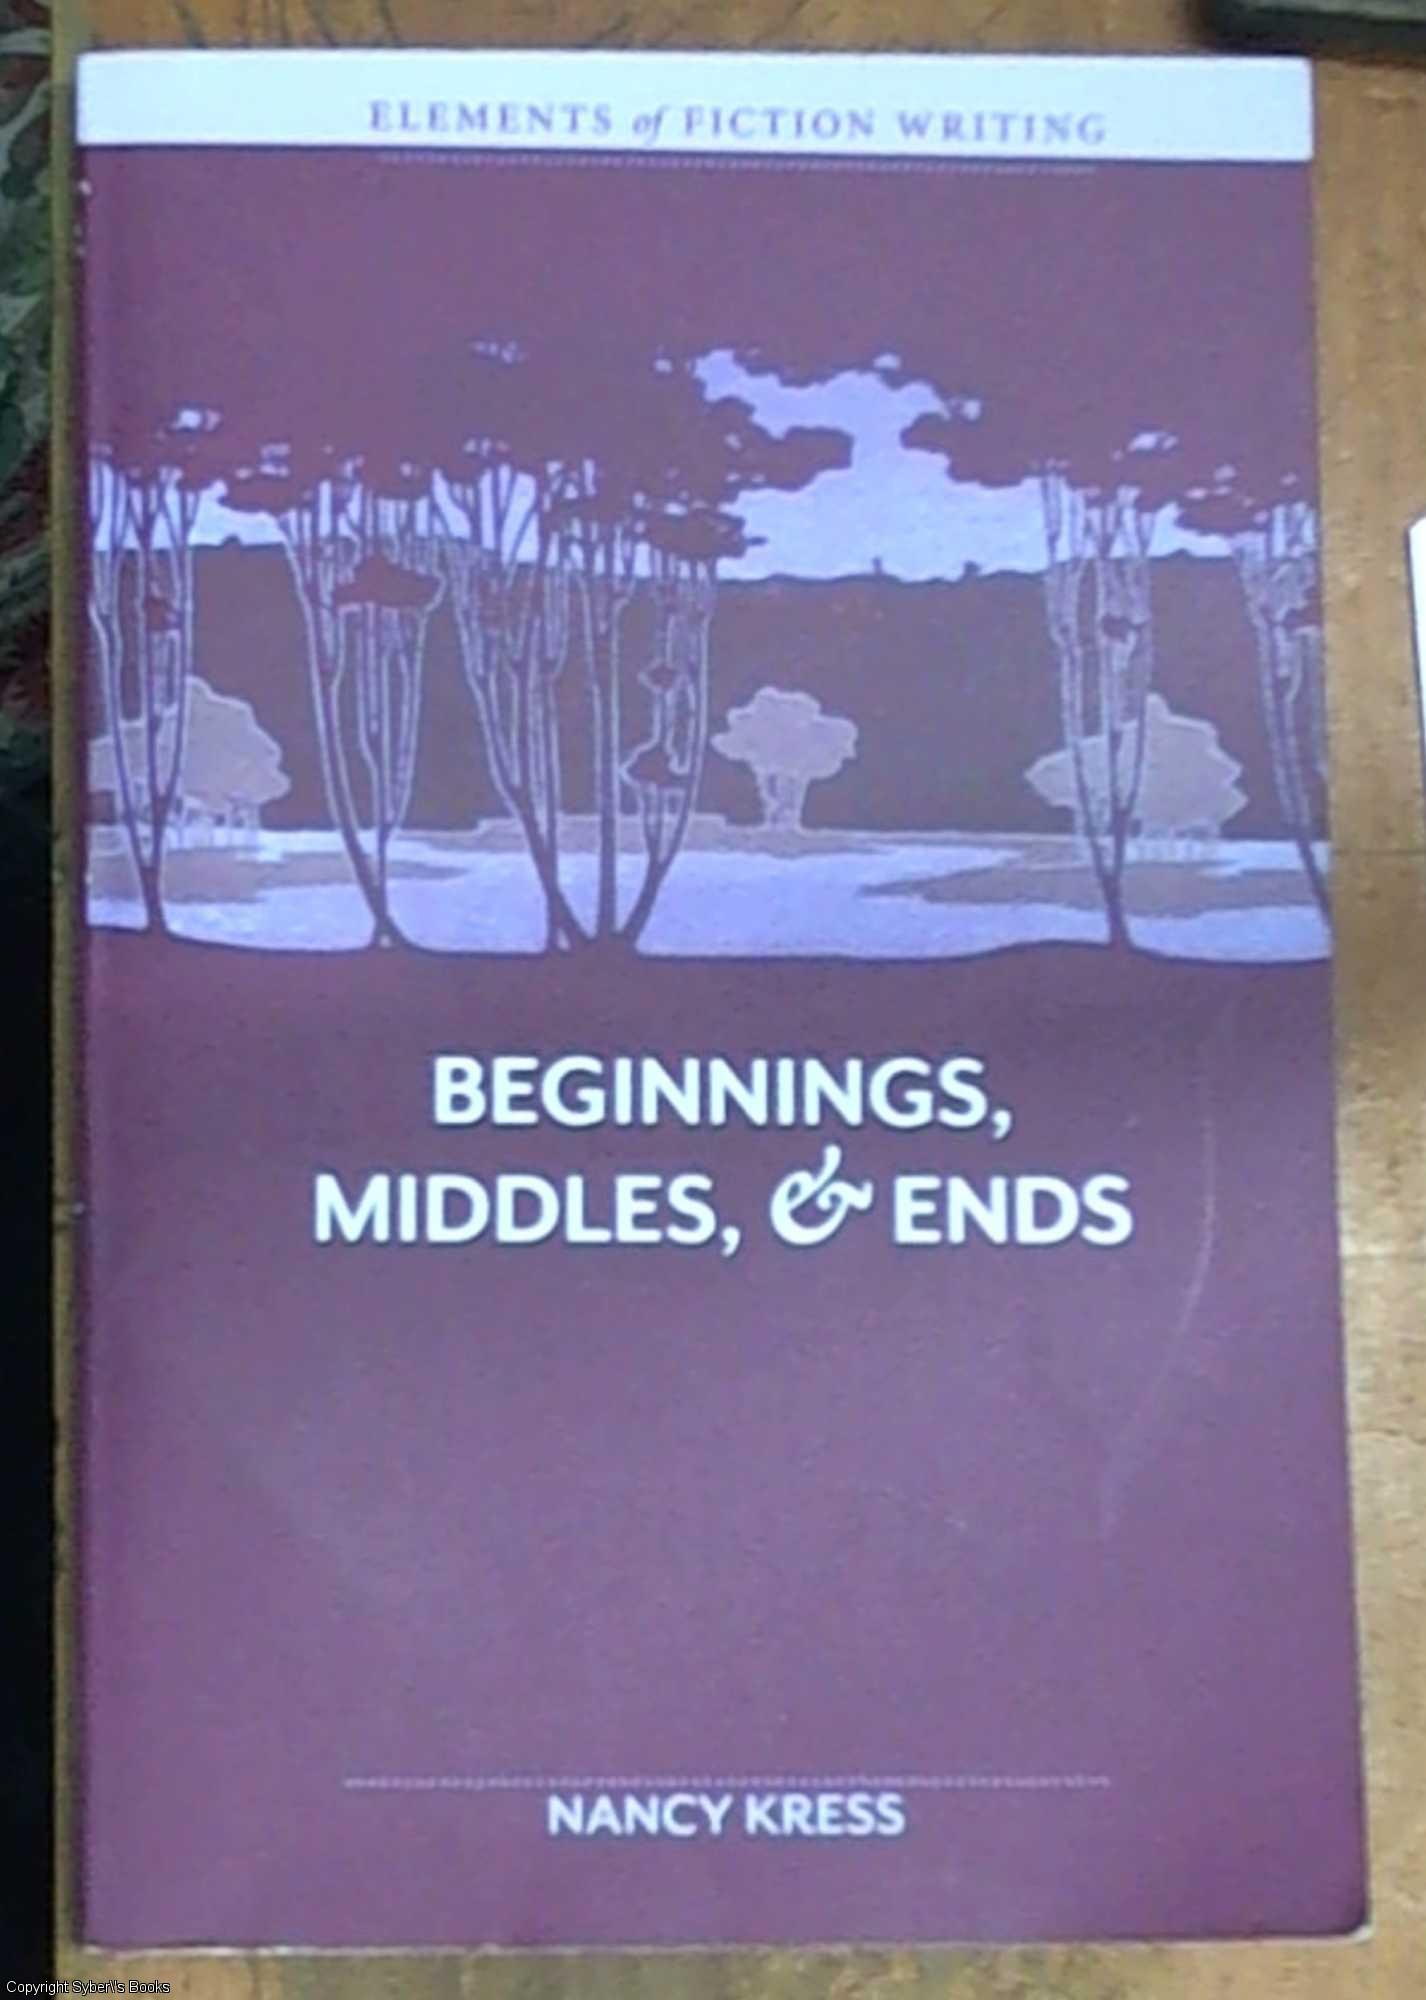 elements of fiction writing beginnings middles and ends kress nancy